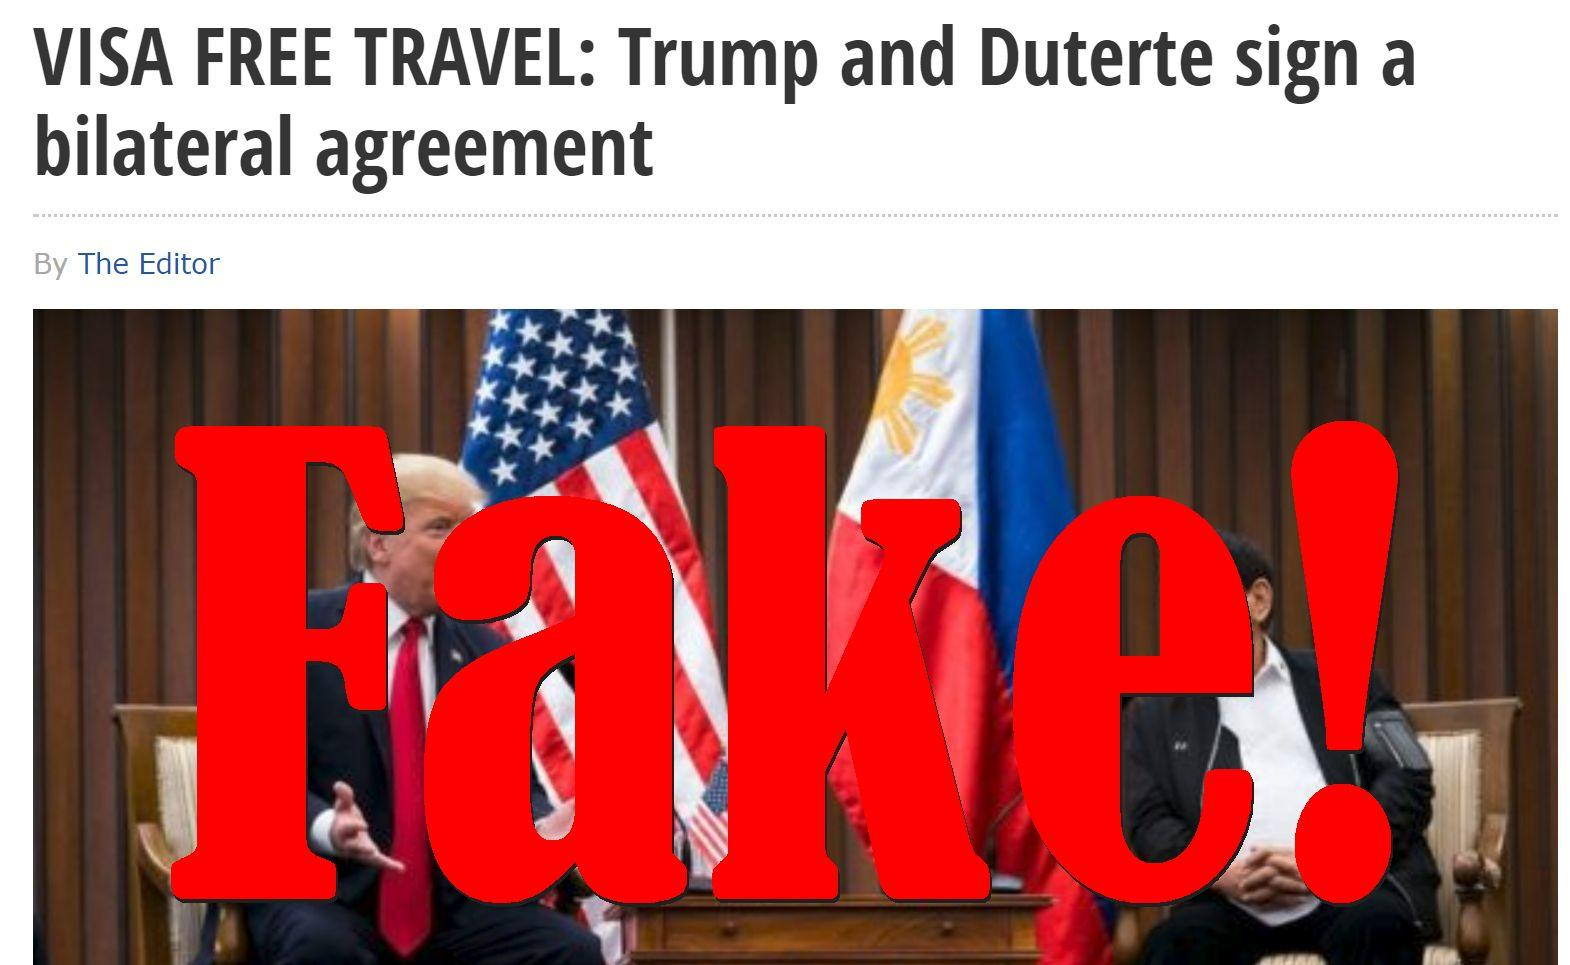 Fake News: Trump and Duterte Did NOT Sign a Bilateral Visa Free Travel Agreement